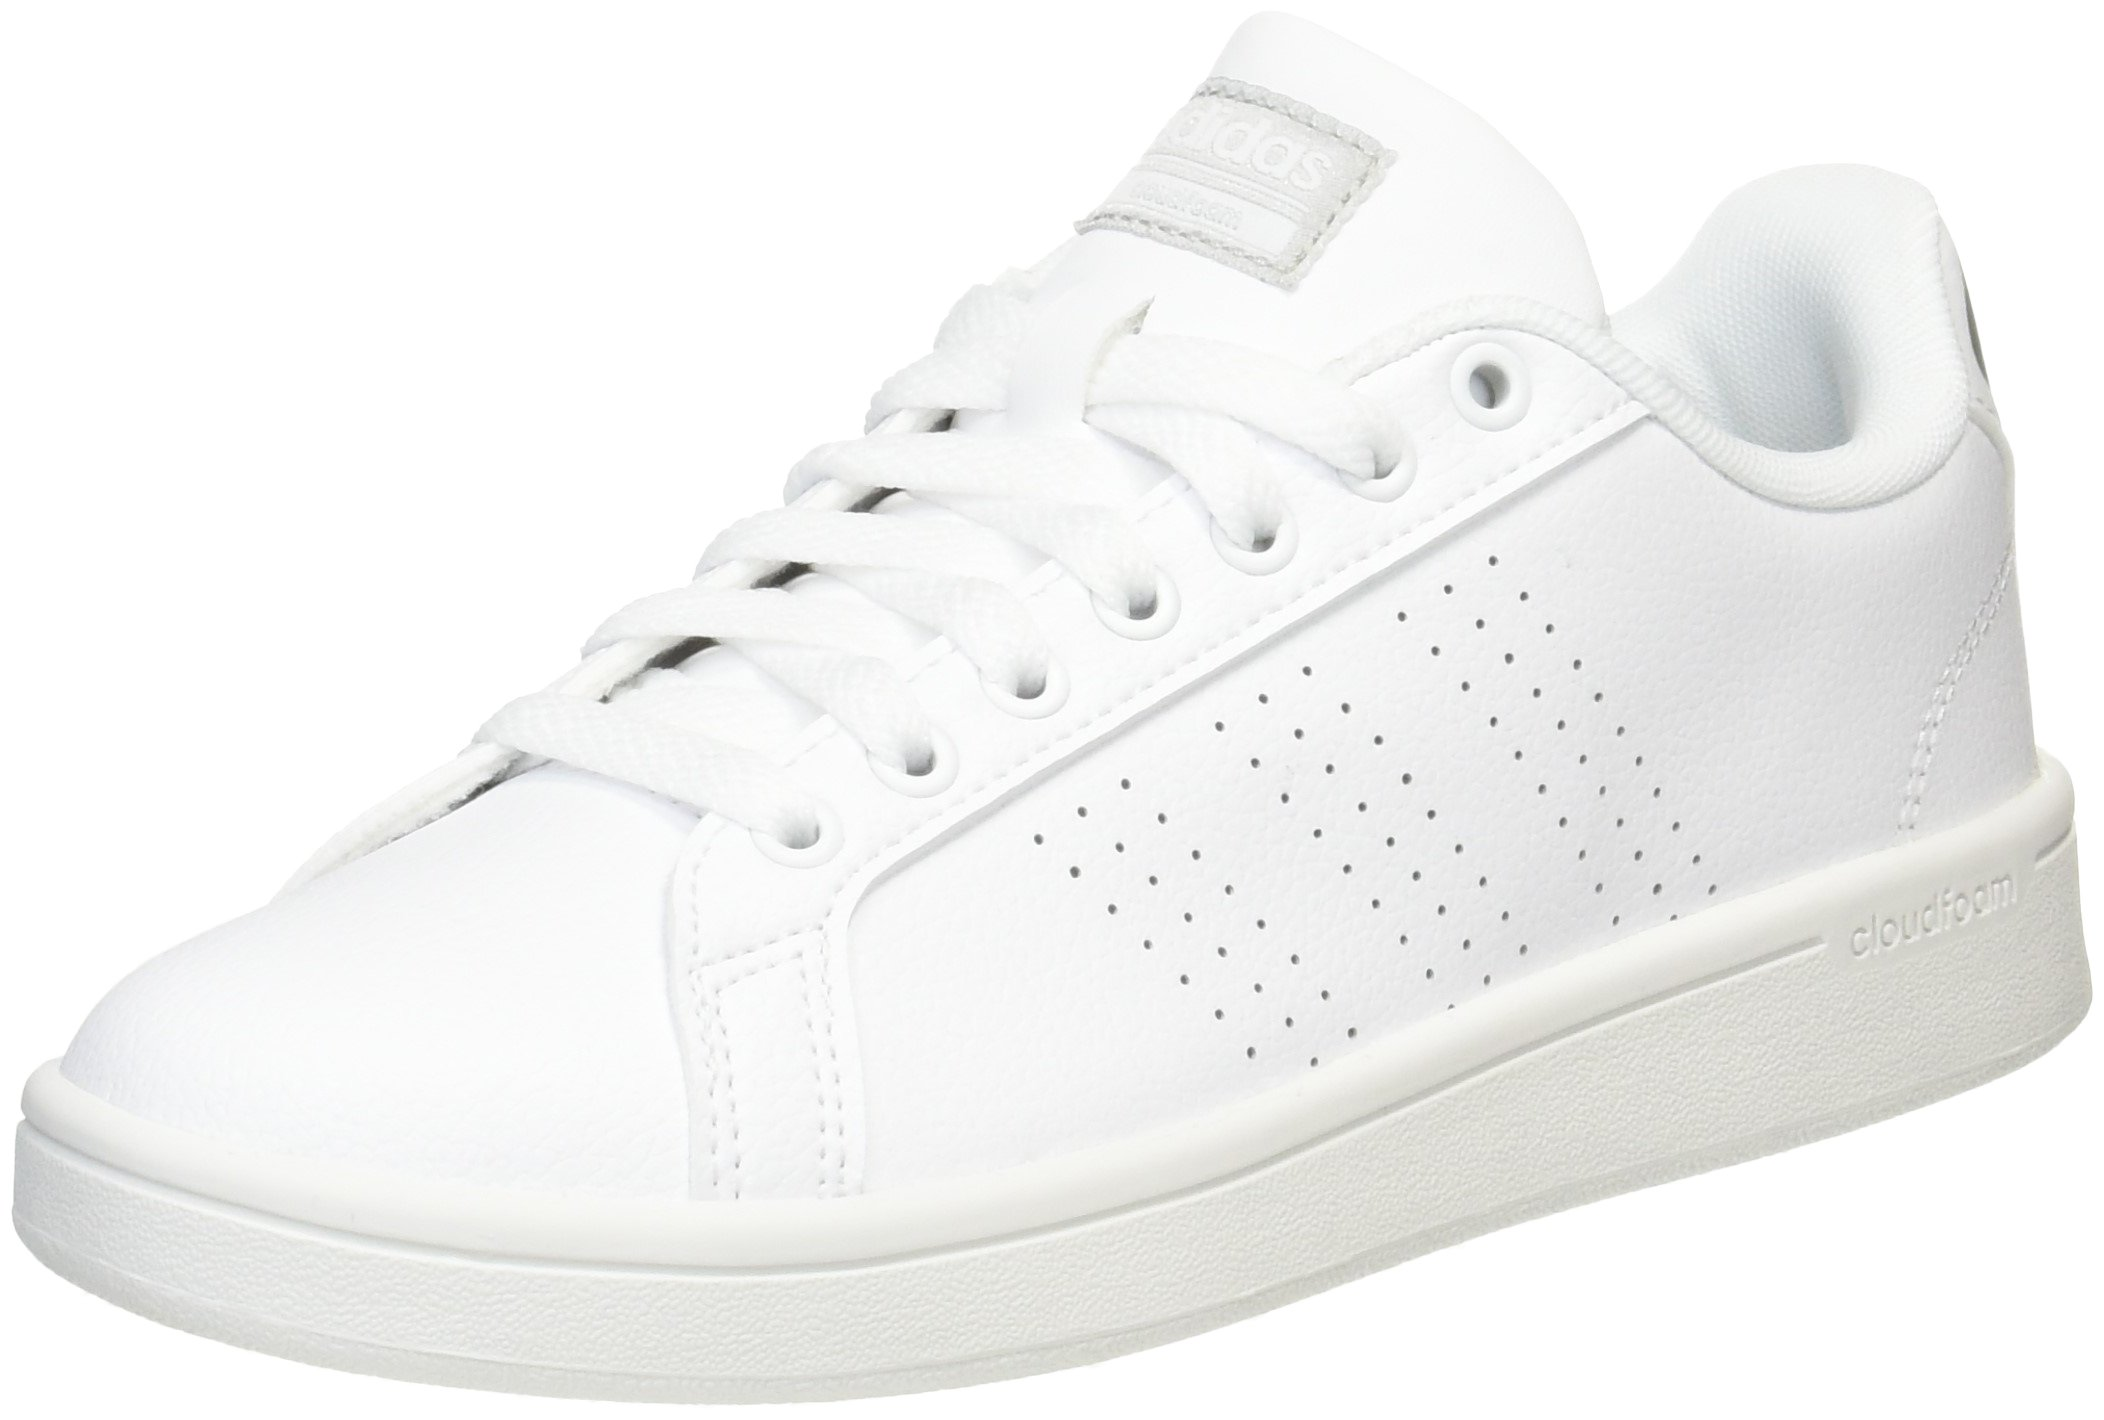 adidas Women's Cf Advantage Cl Fitness Shoes - Buy Online in ...